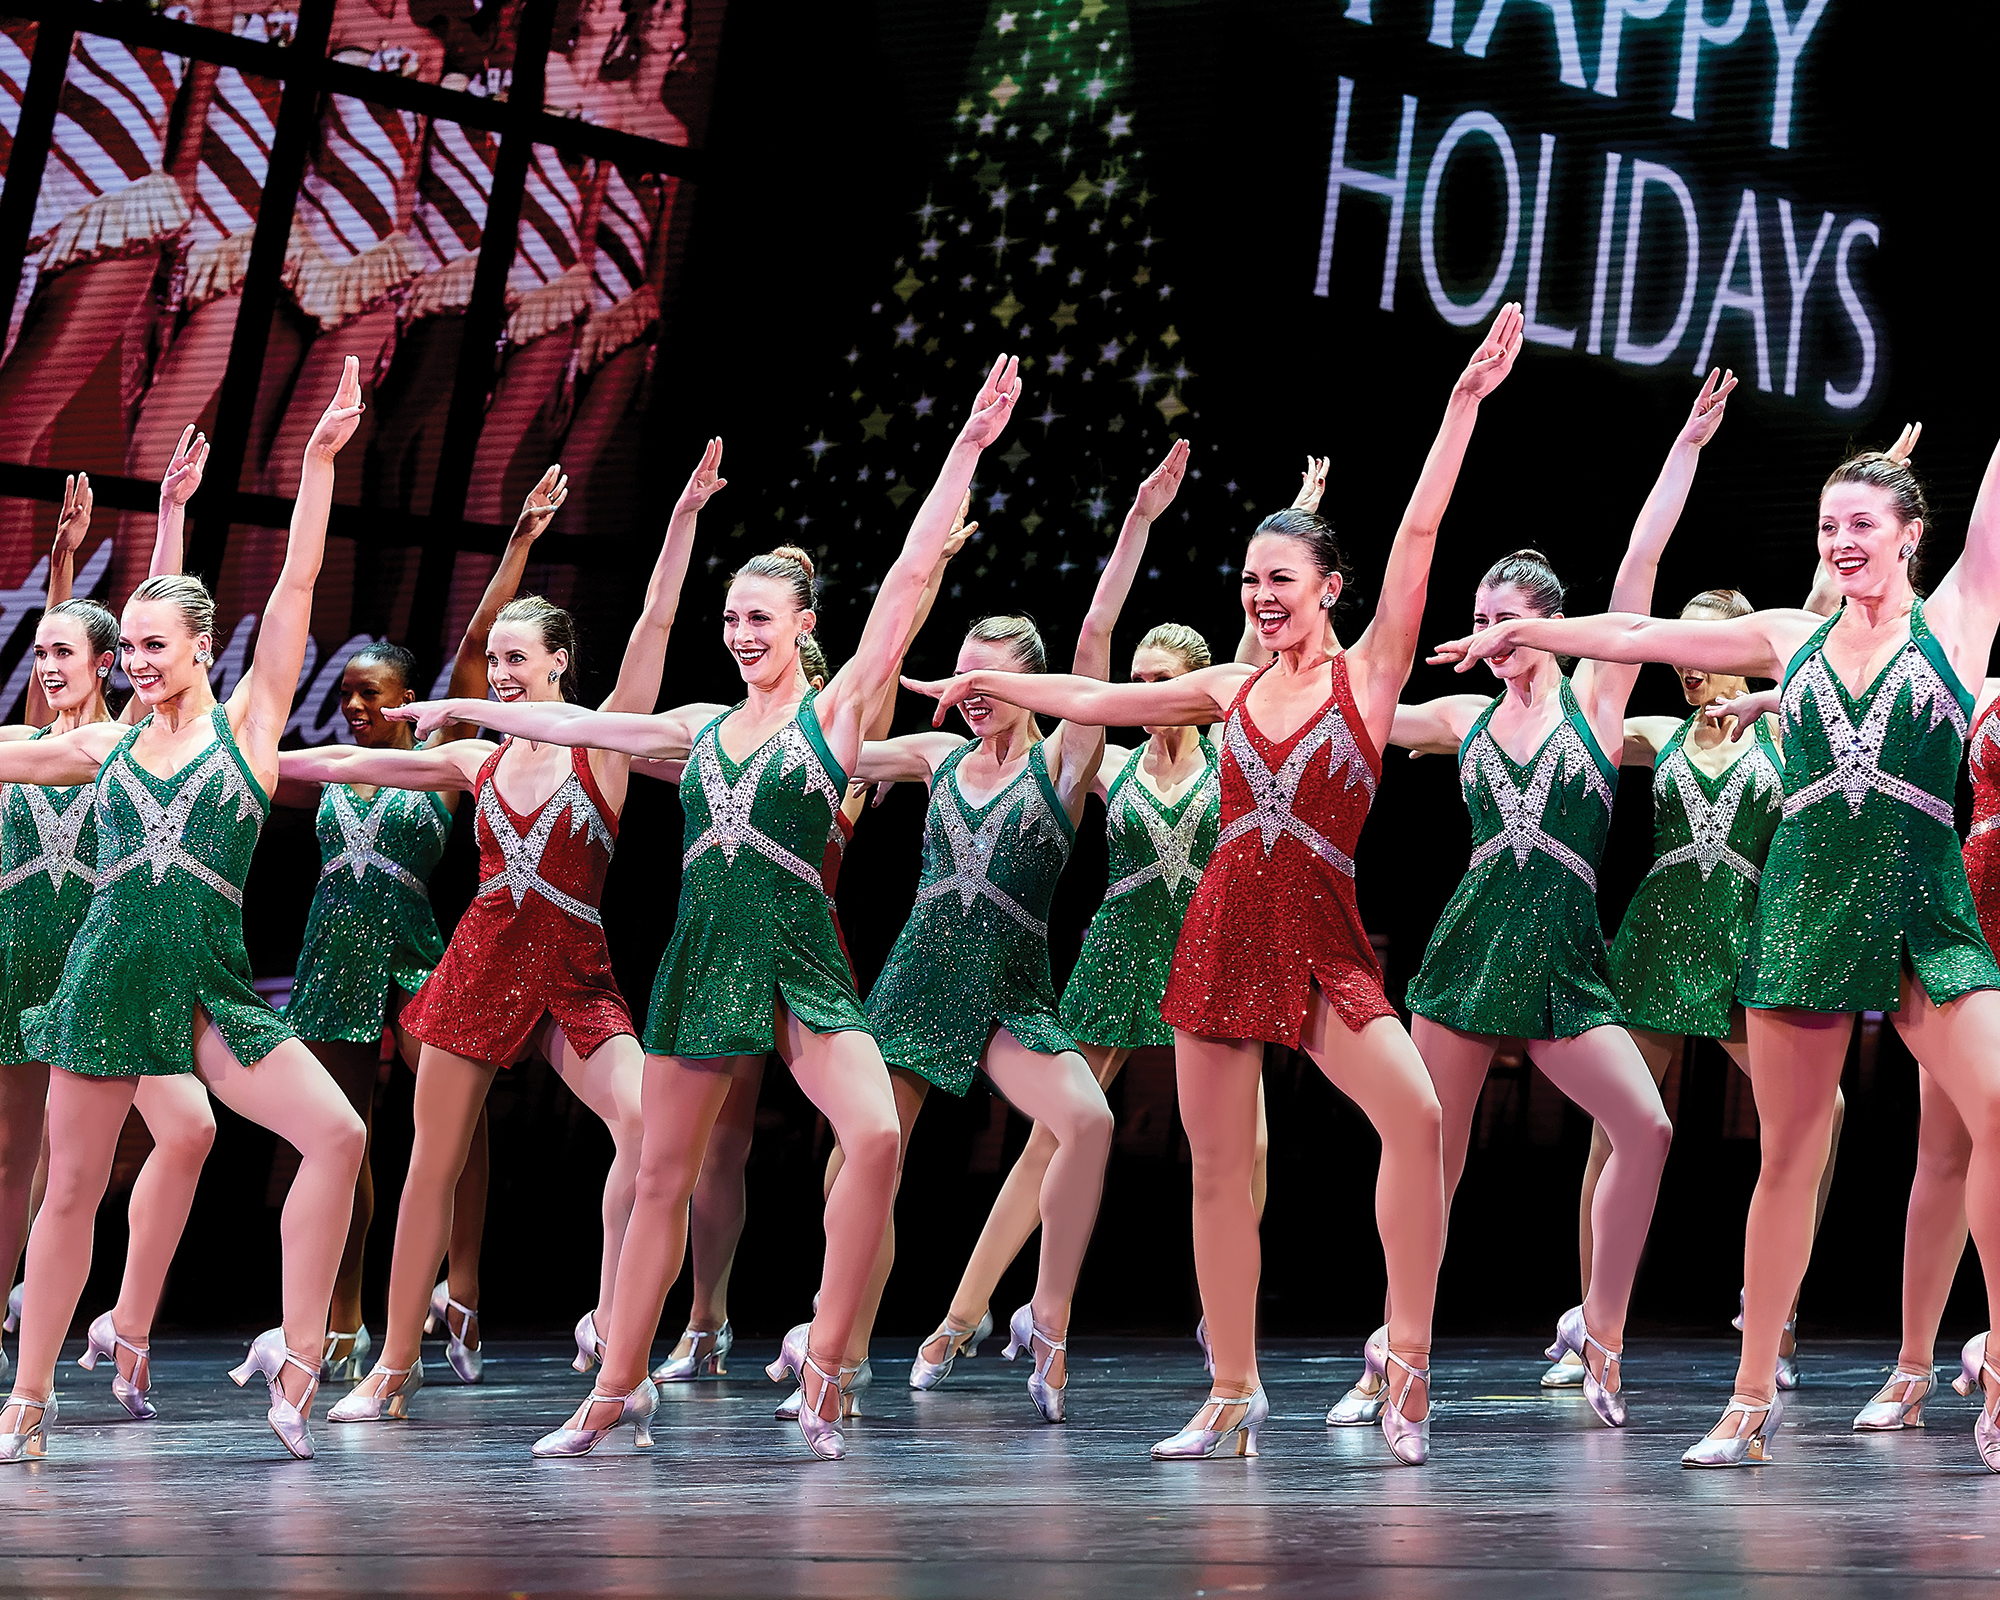 ChristmasSpectacular19_productionphotos_2000x1600_7_RCCS_110718_3510.jpg